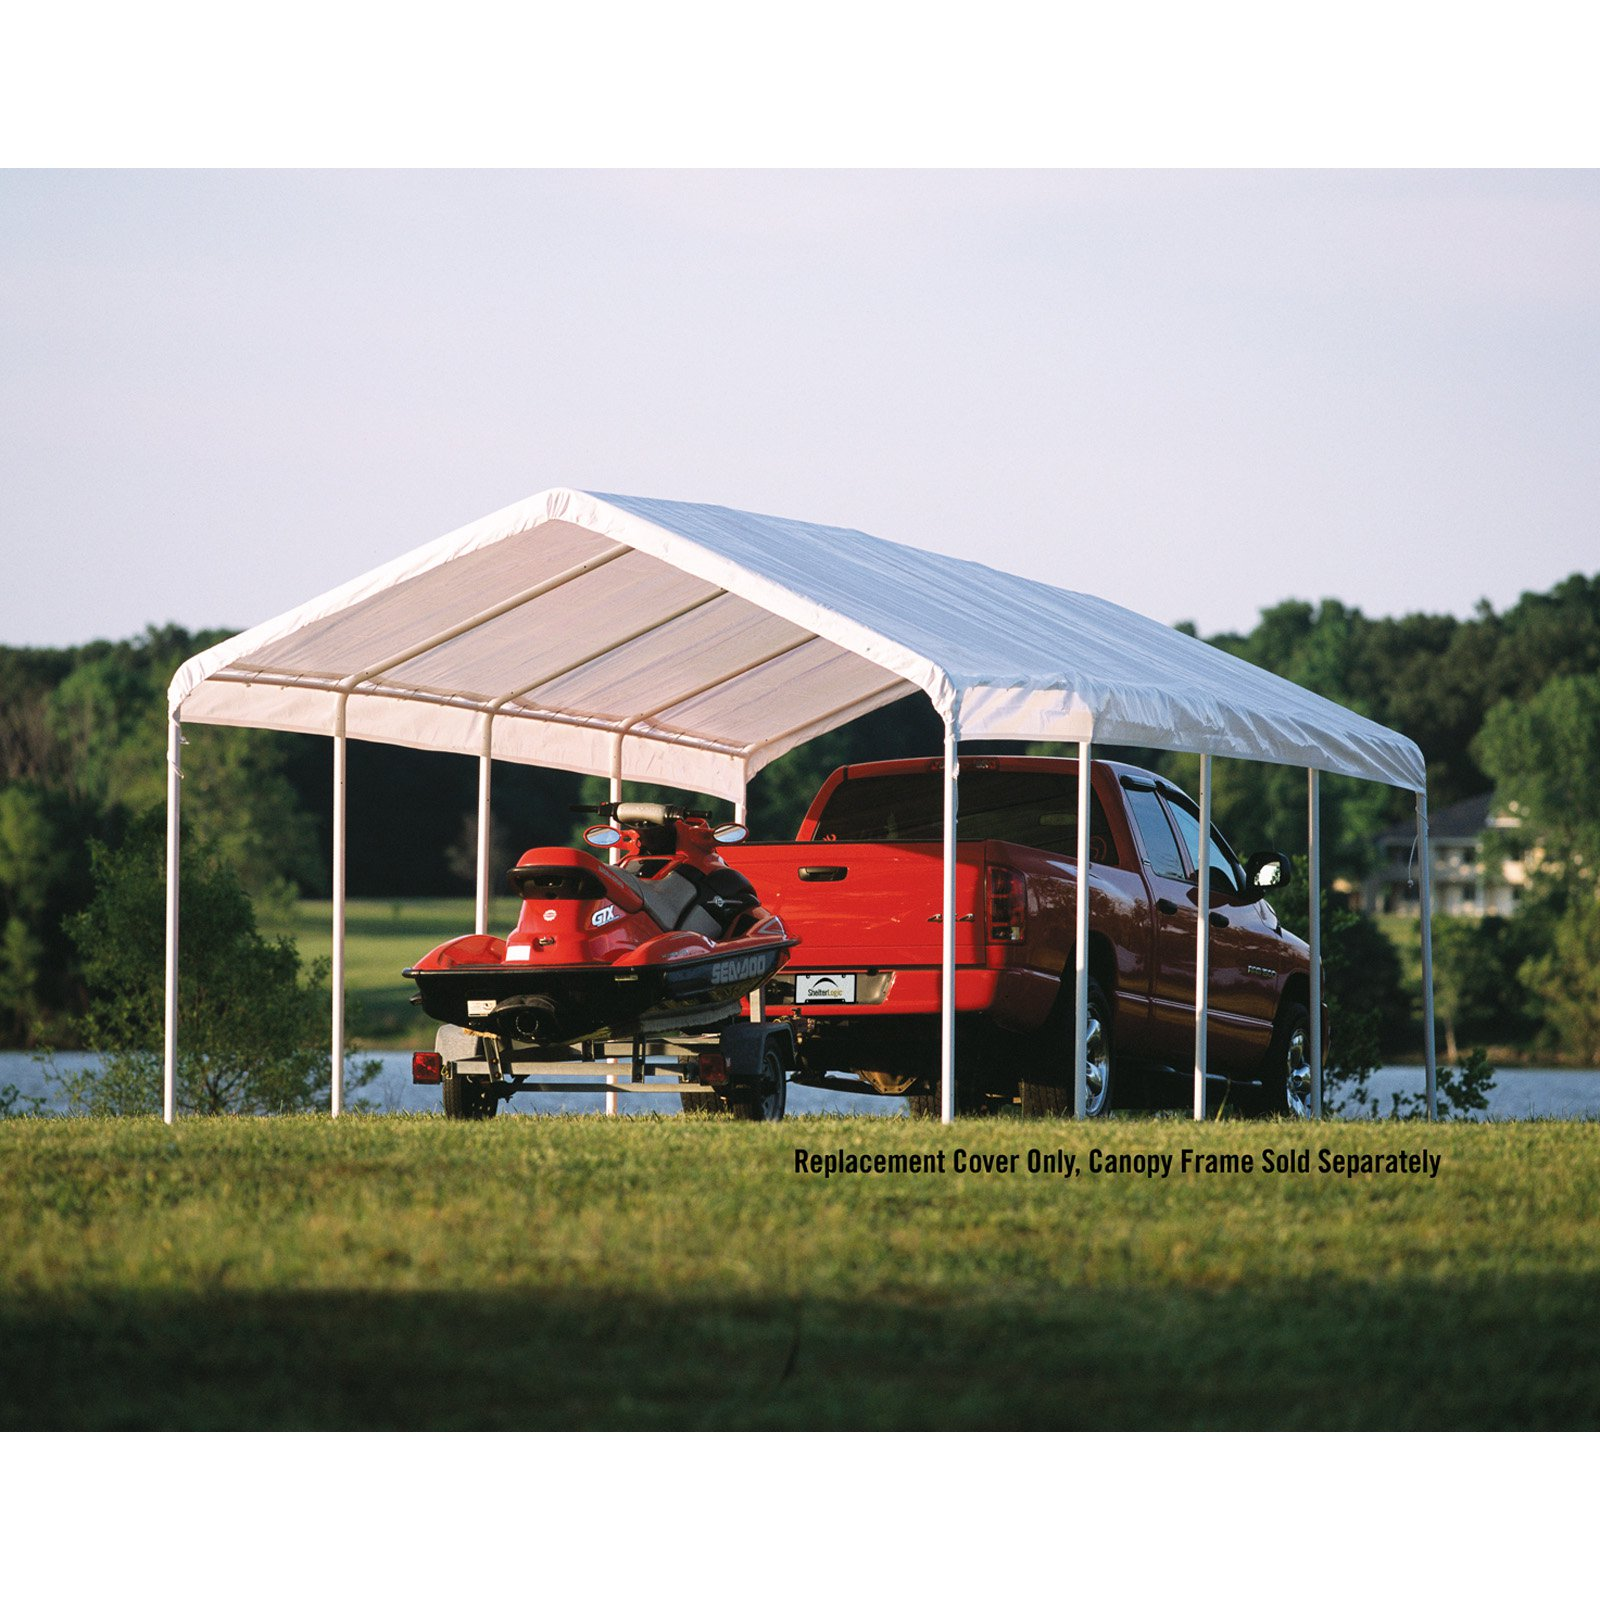 ShelterLogic 12 x 26 Canopy Replacement Cover for 2 in. Frame